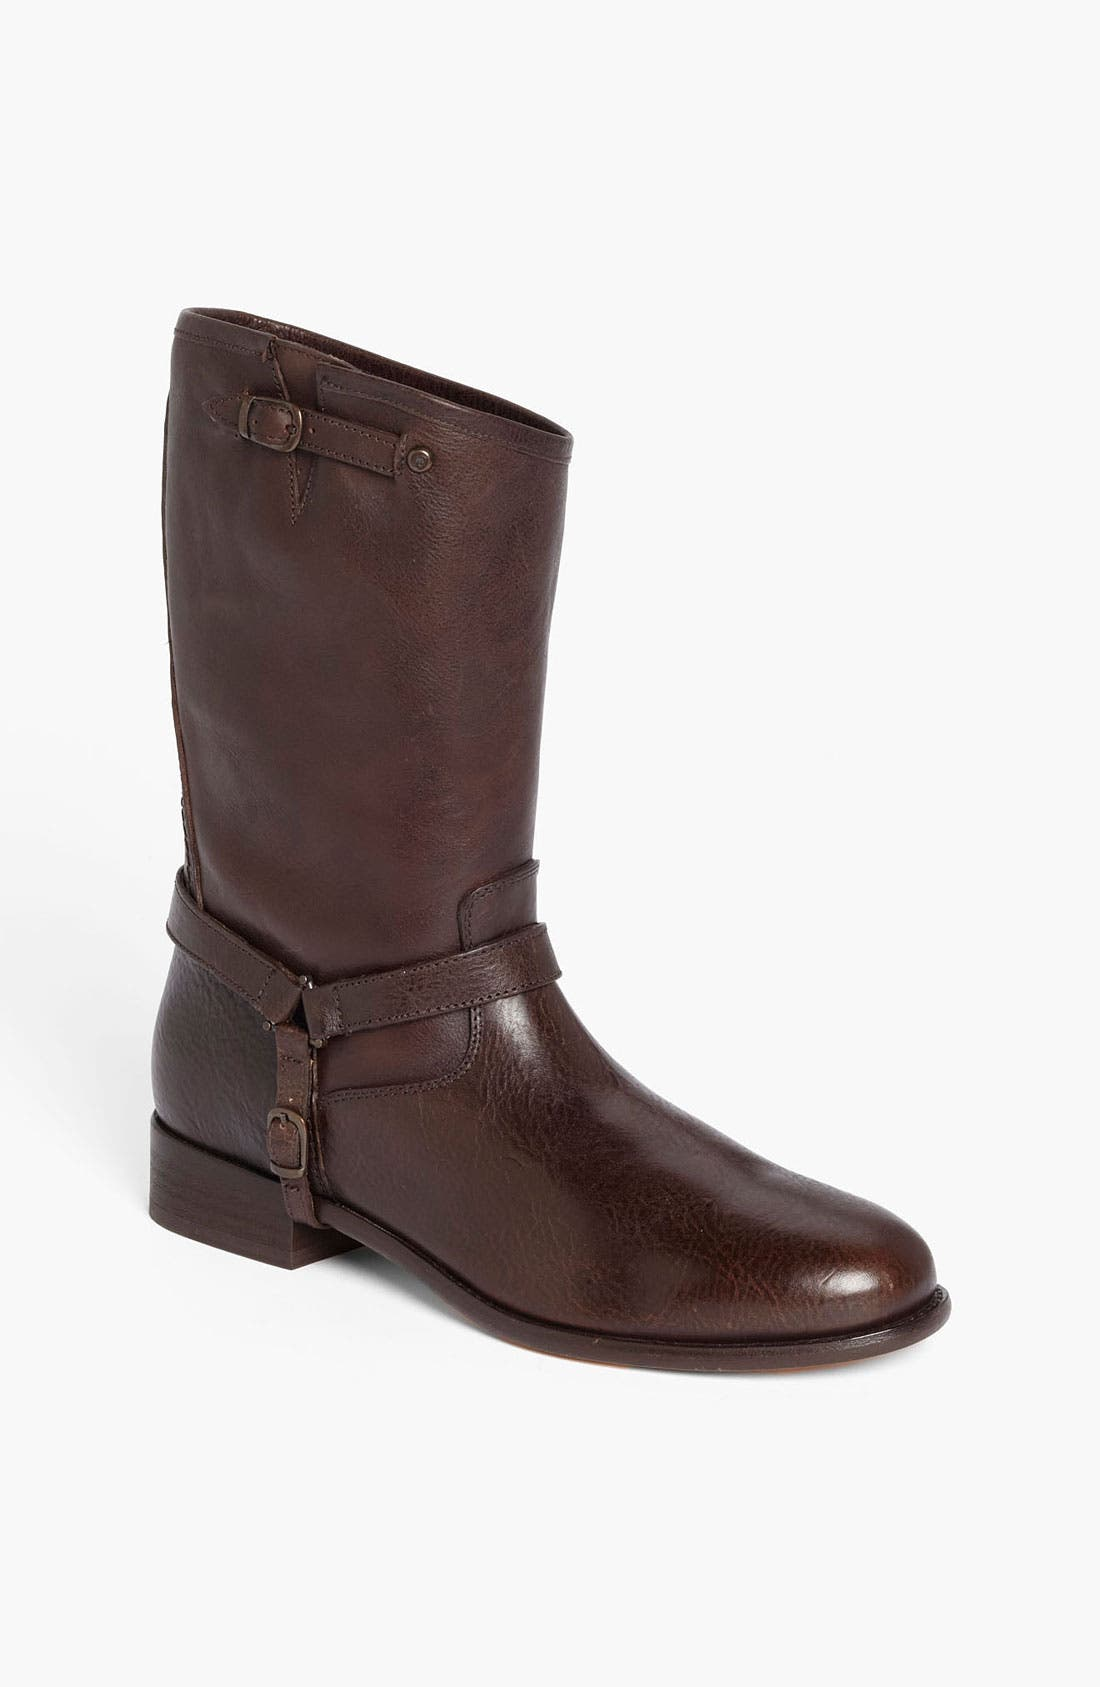 Alternate Image 1 Selected - Ariat 'Bedford' Boot